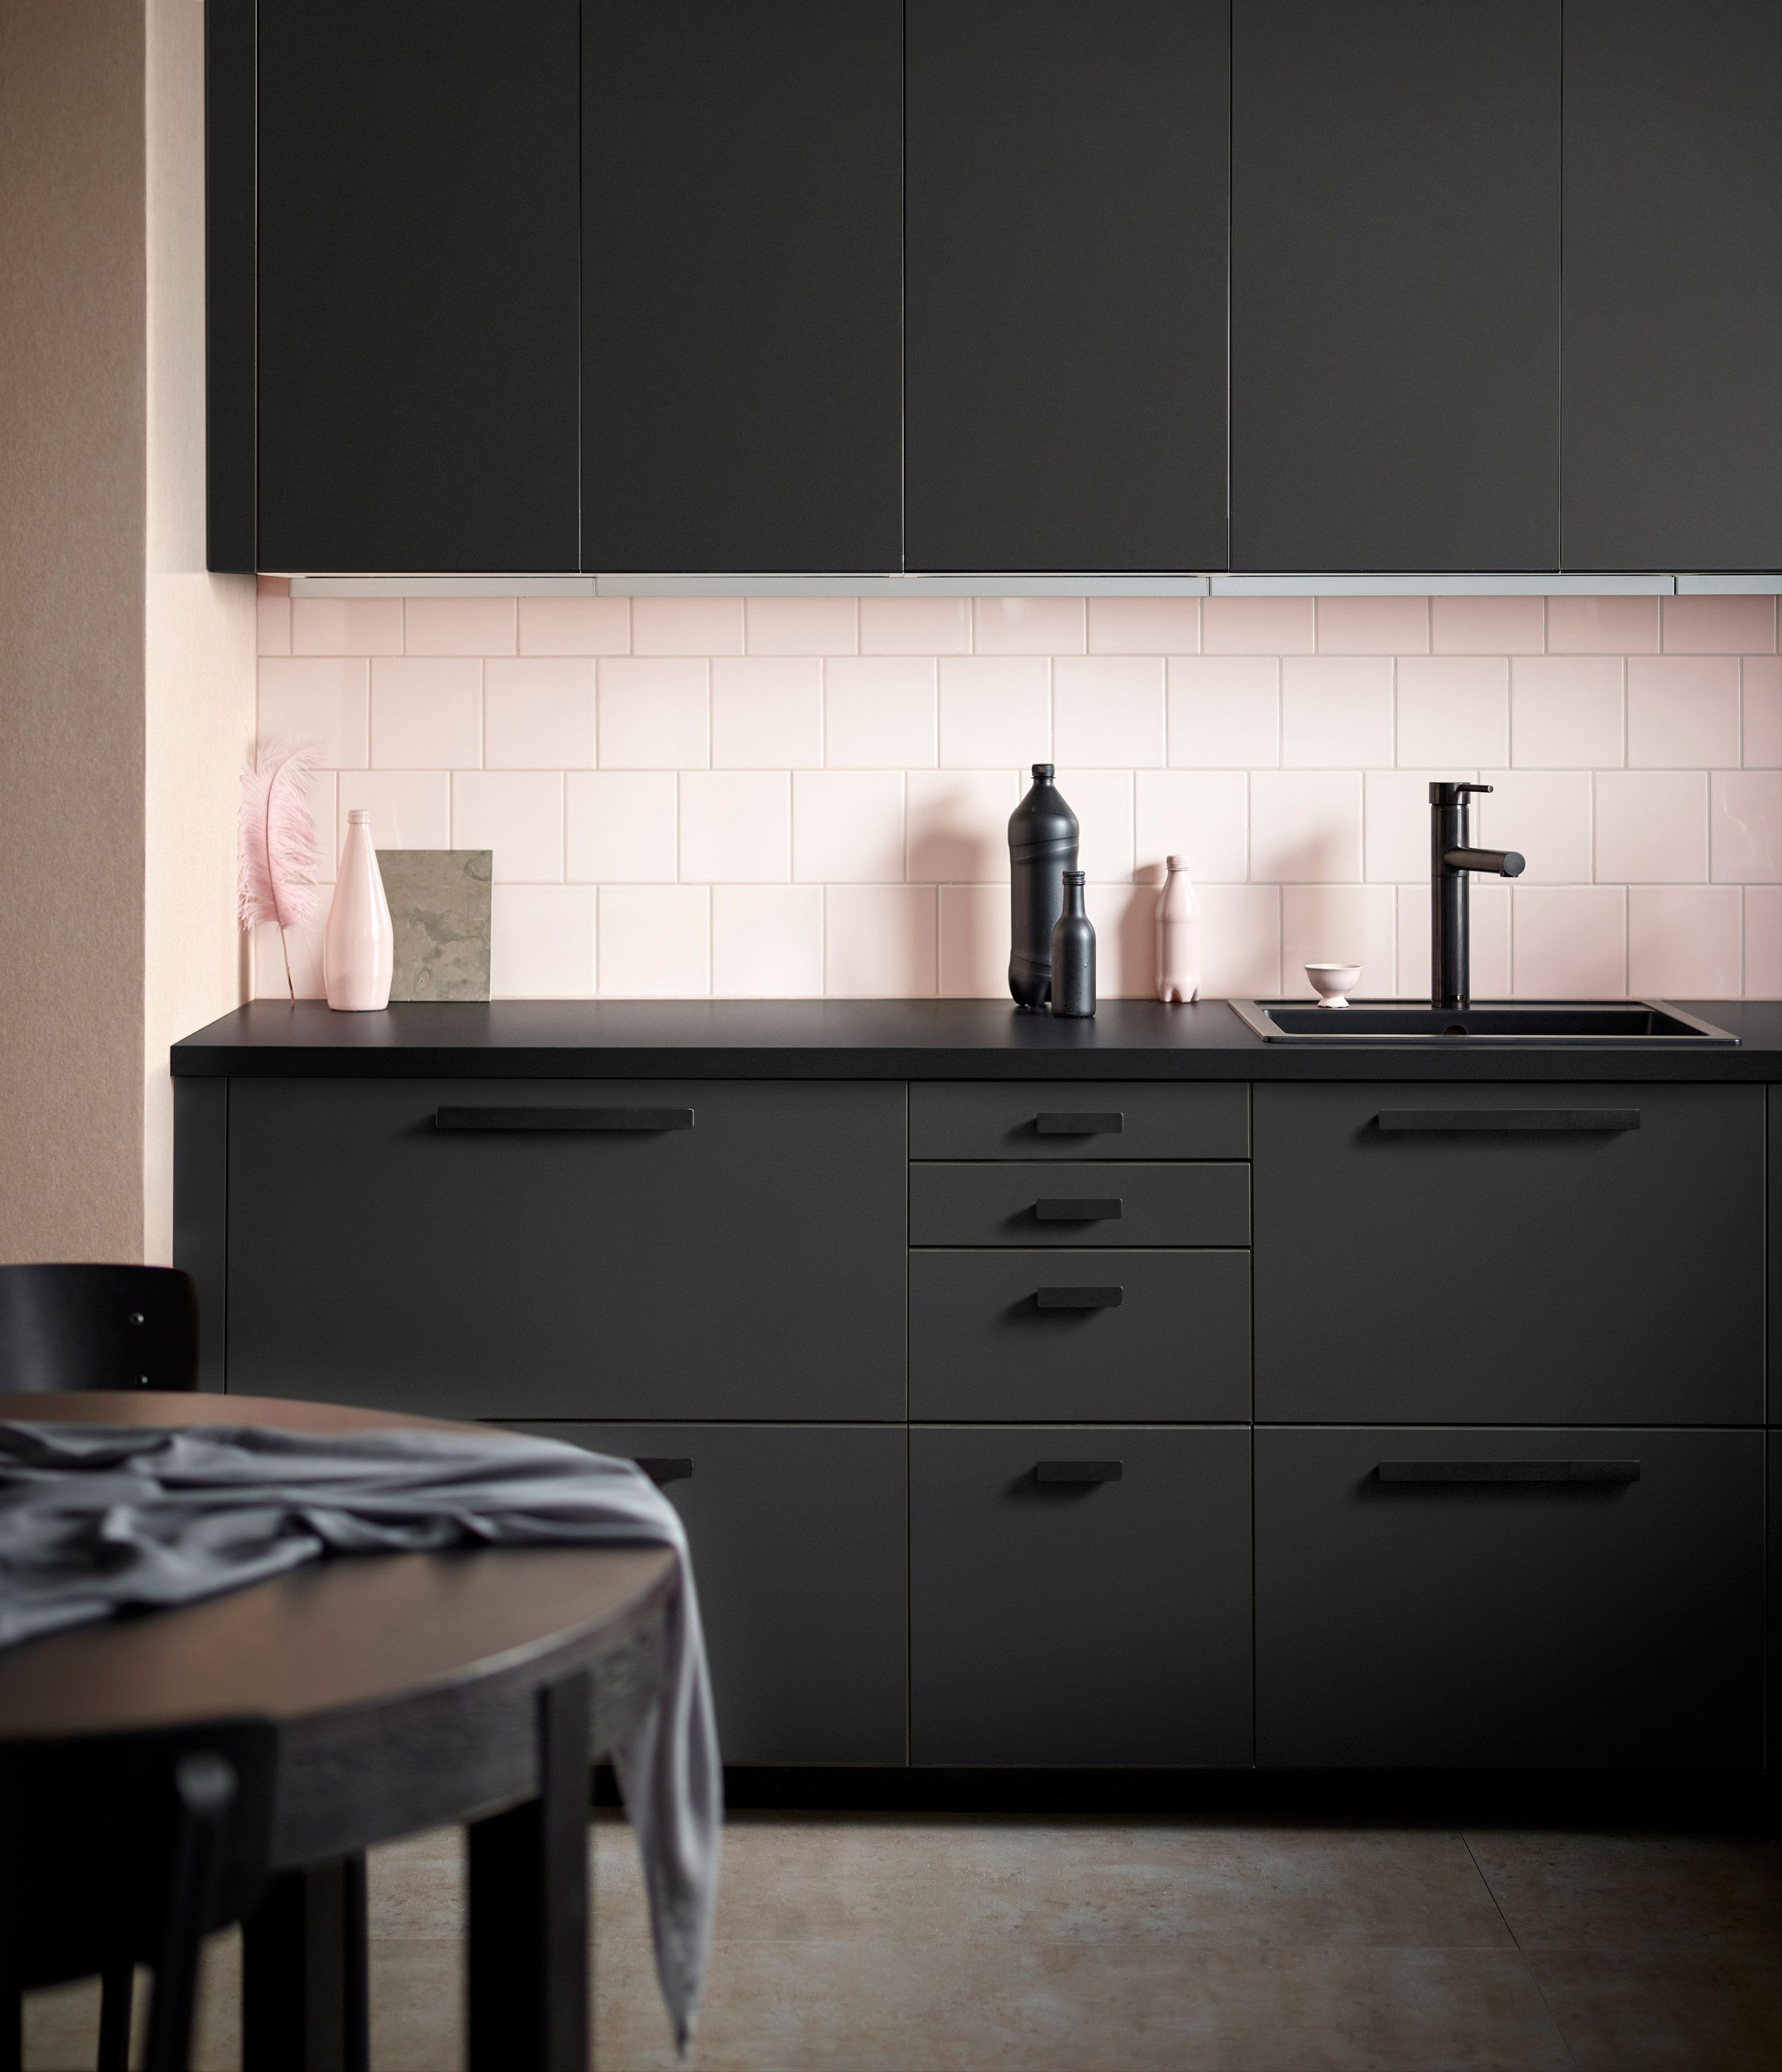 ikea s new kitchen system is made from plastic bottles ikea